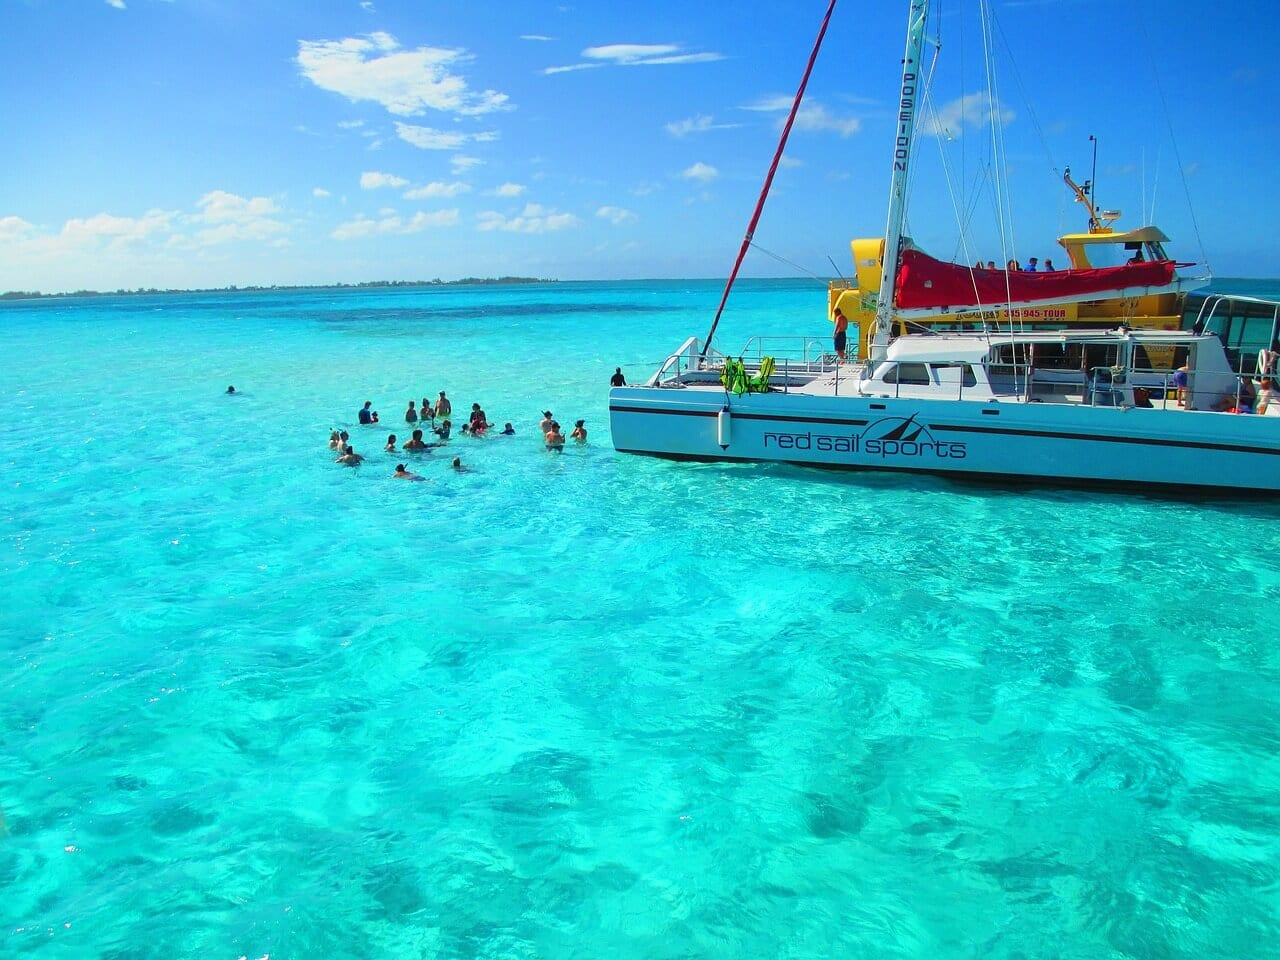 A boat and people sitting in the crystal clear blue water off the shores of the Cayman Islands